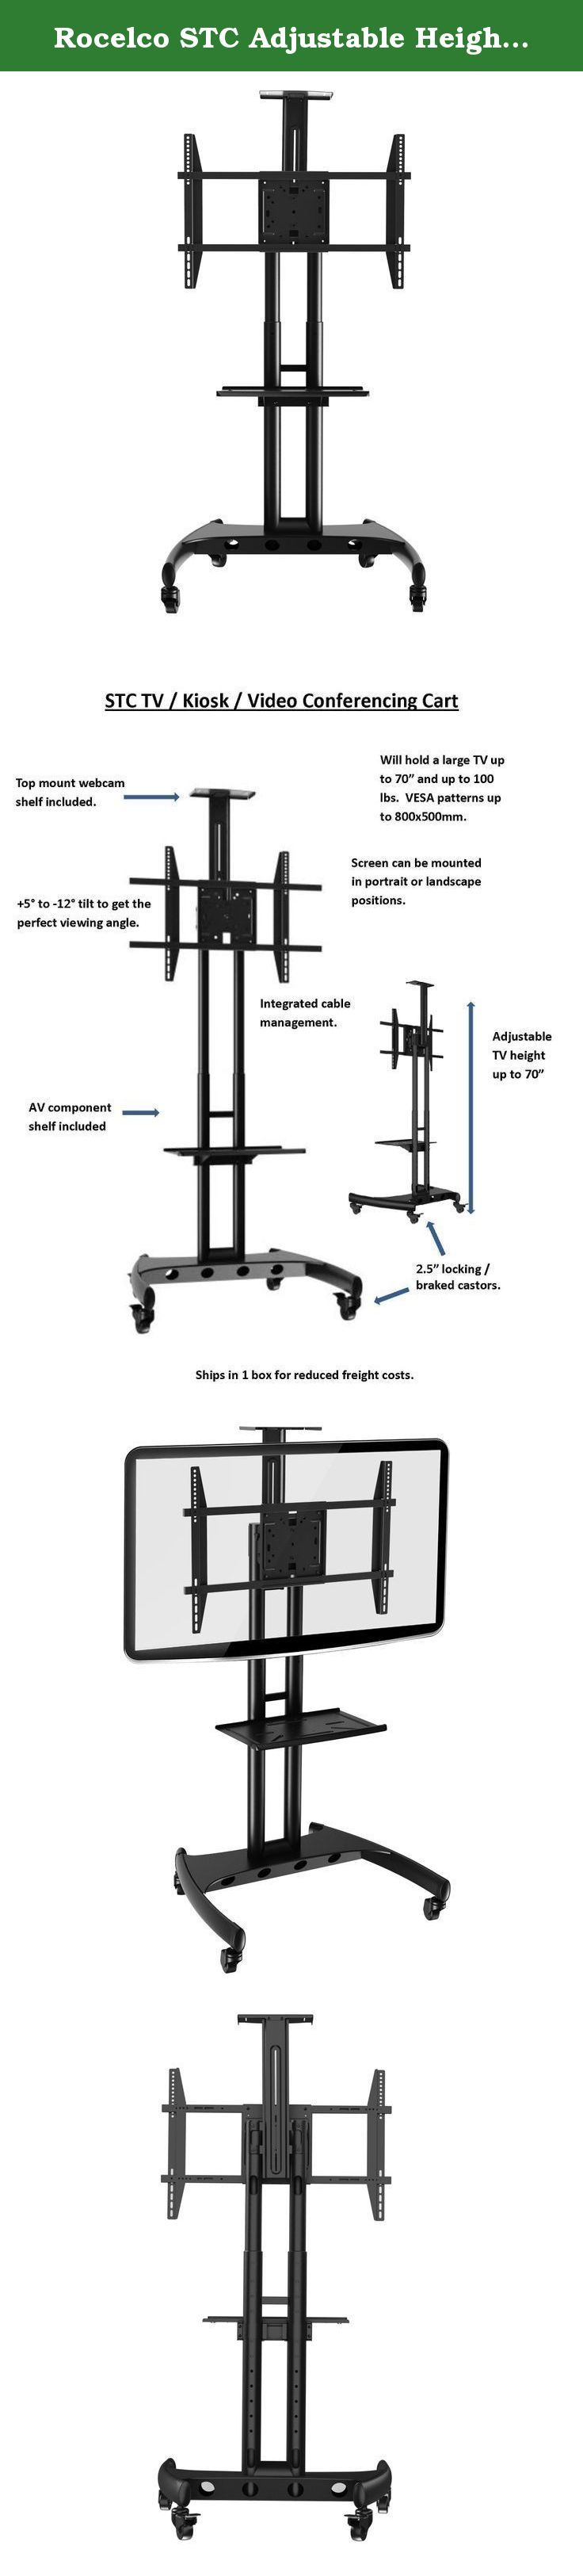 Rocelco STC Adjustable Height Mobile TV Stand, Tilts and Rotates, for 32-70 Inch Flat Screen TVs, with AV and Webcam Shelf - Black. The STC Large Flat Screen Video Cart with AV shelf and Video Tray is the perfect solution in offices, conference rooms, classrooms, kiosks, retail stores, hotels and training centers. The heavy duty steel frame can easily support large screens up to 100 lbs. The flexible TV mounting interface can accommodate screens from 32'' - 70'' (all VESA patterns up to...